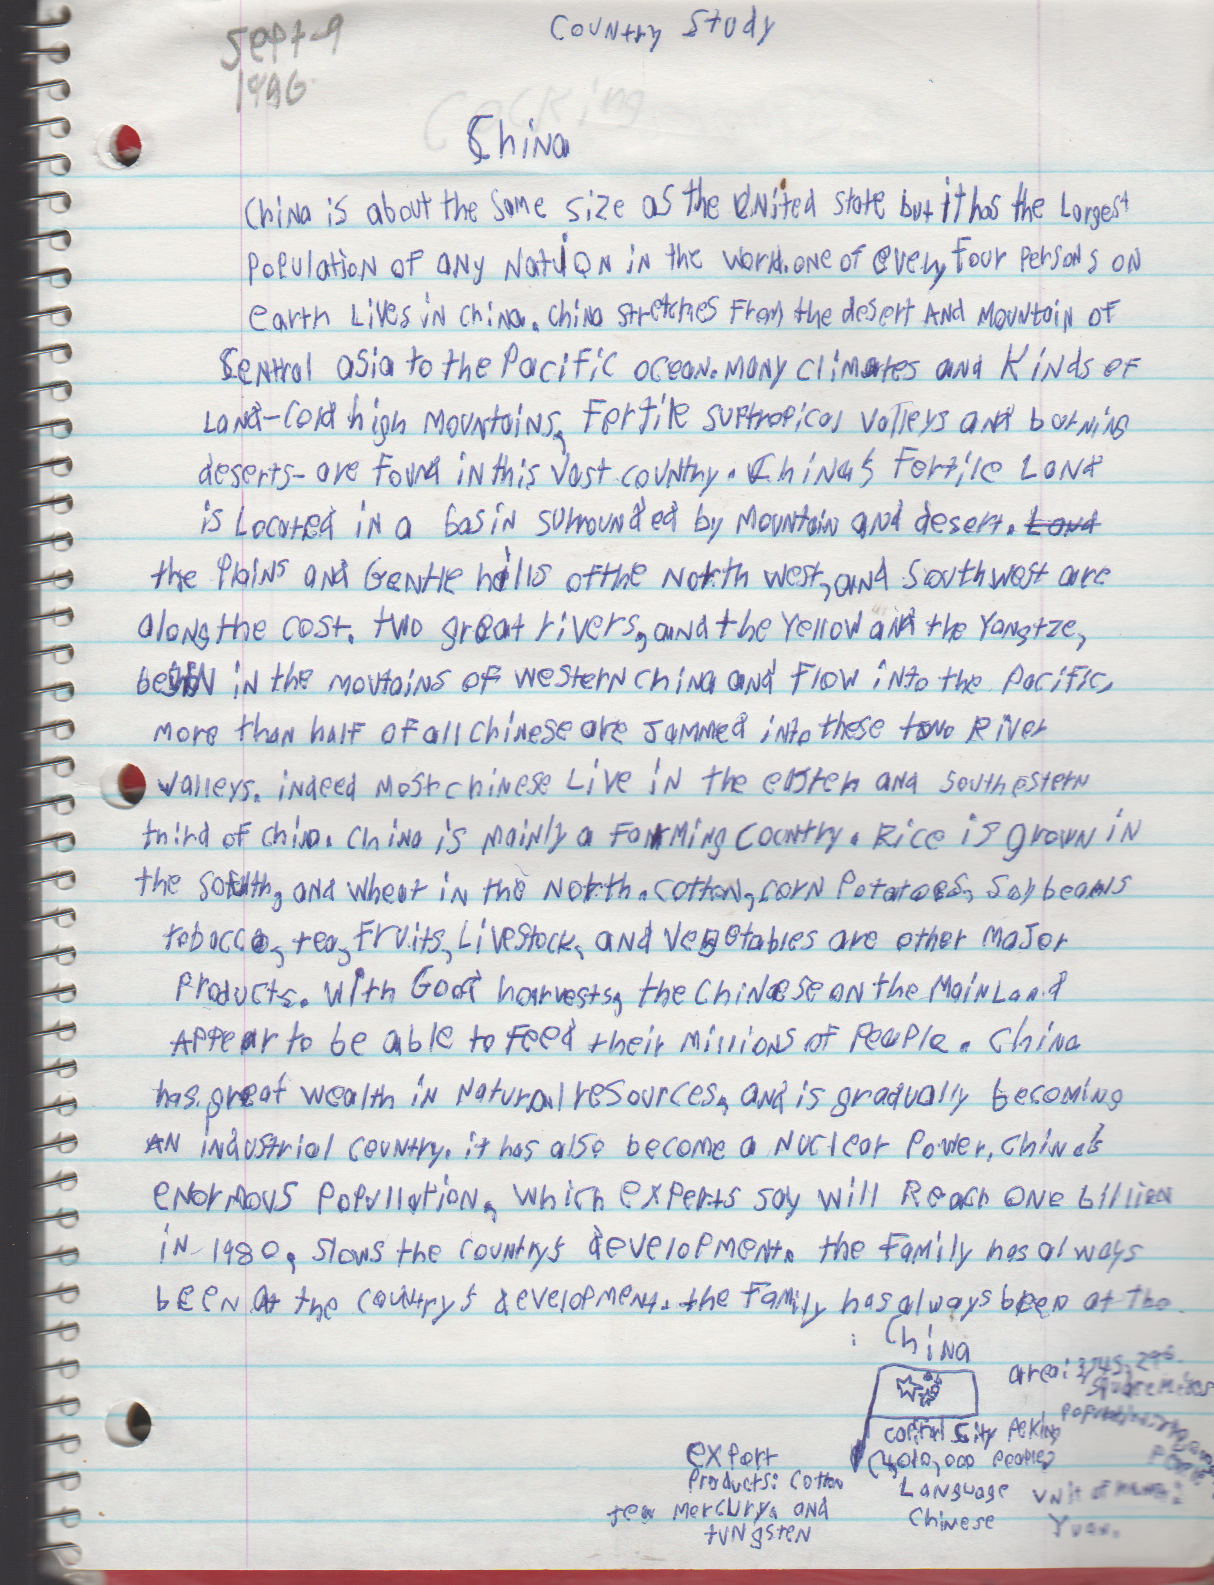 1996-08-18 - Saturday - 11 yr old Joey Arnold's School Book, dates through to 1998 apx, mostly 96, Writings, Drawings, Etc-068.png